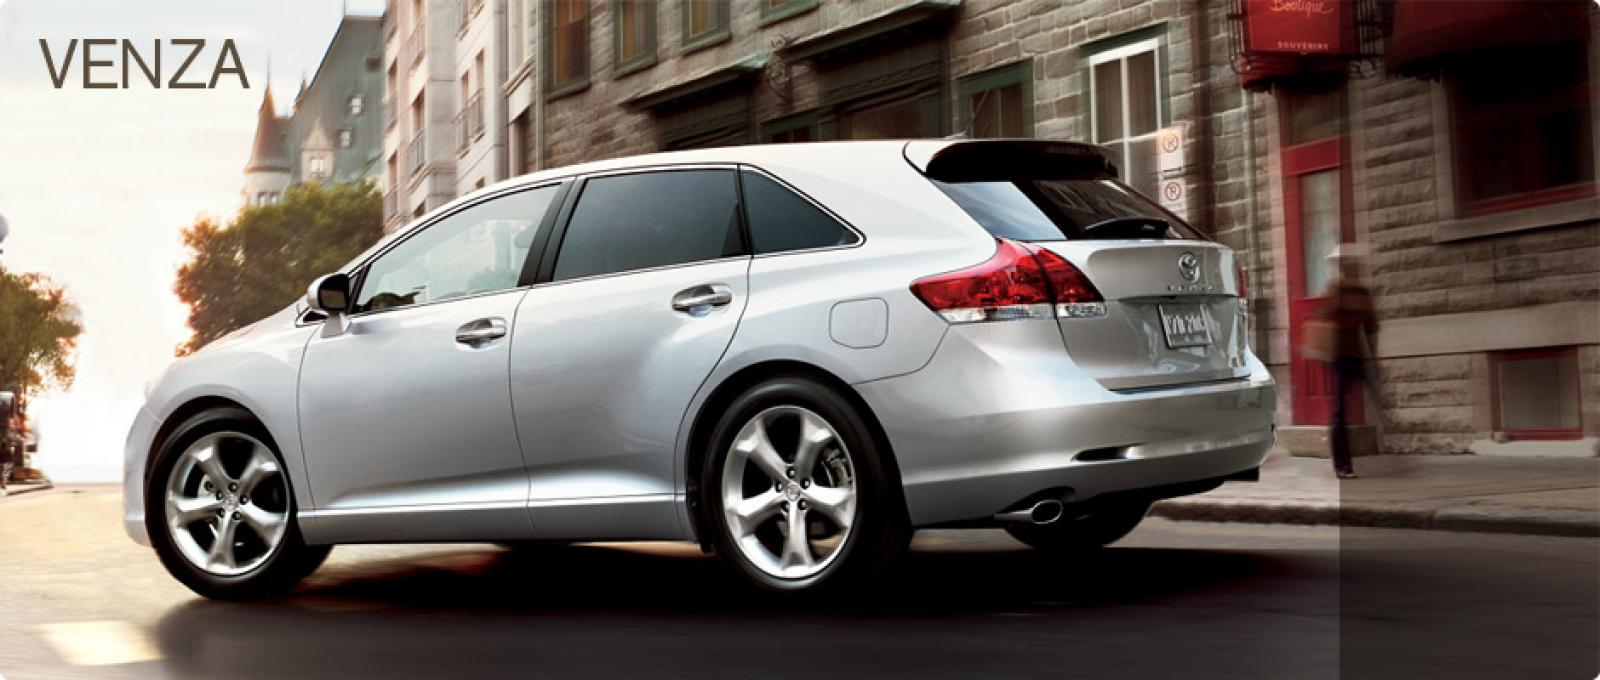 2014 toyota venza information and photos zombiedrive. Black Bedroom Furniture Sets. Home Design Ideas